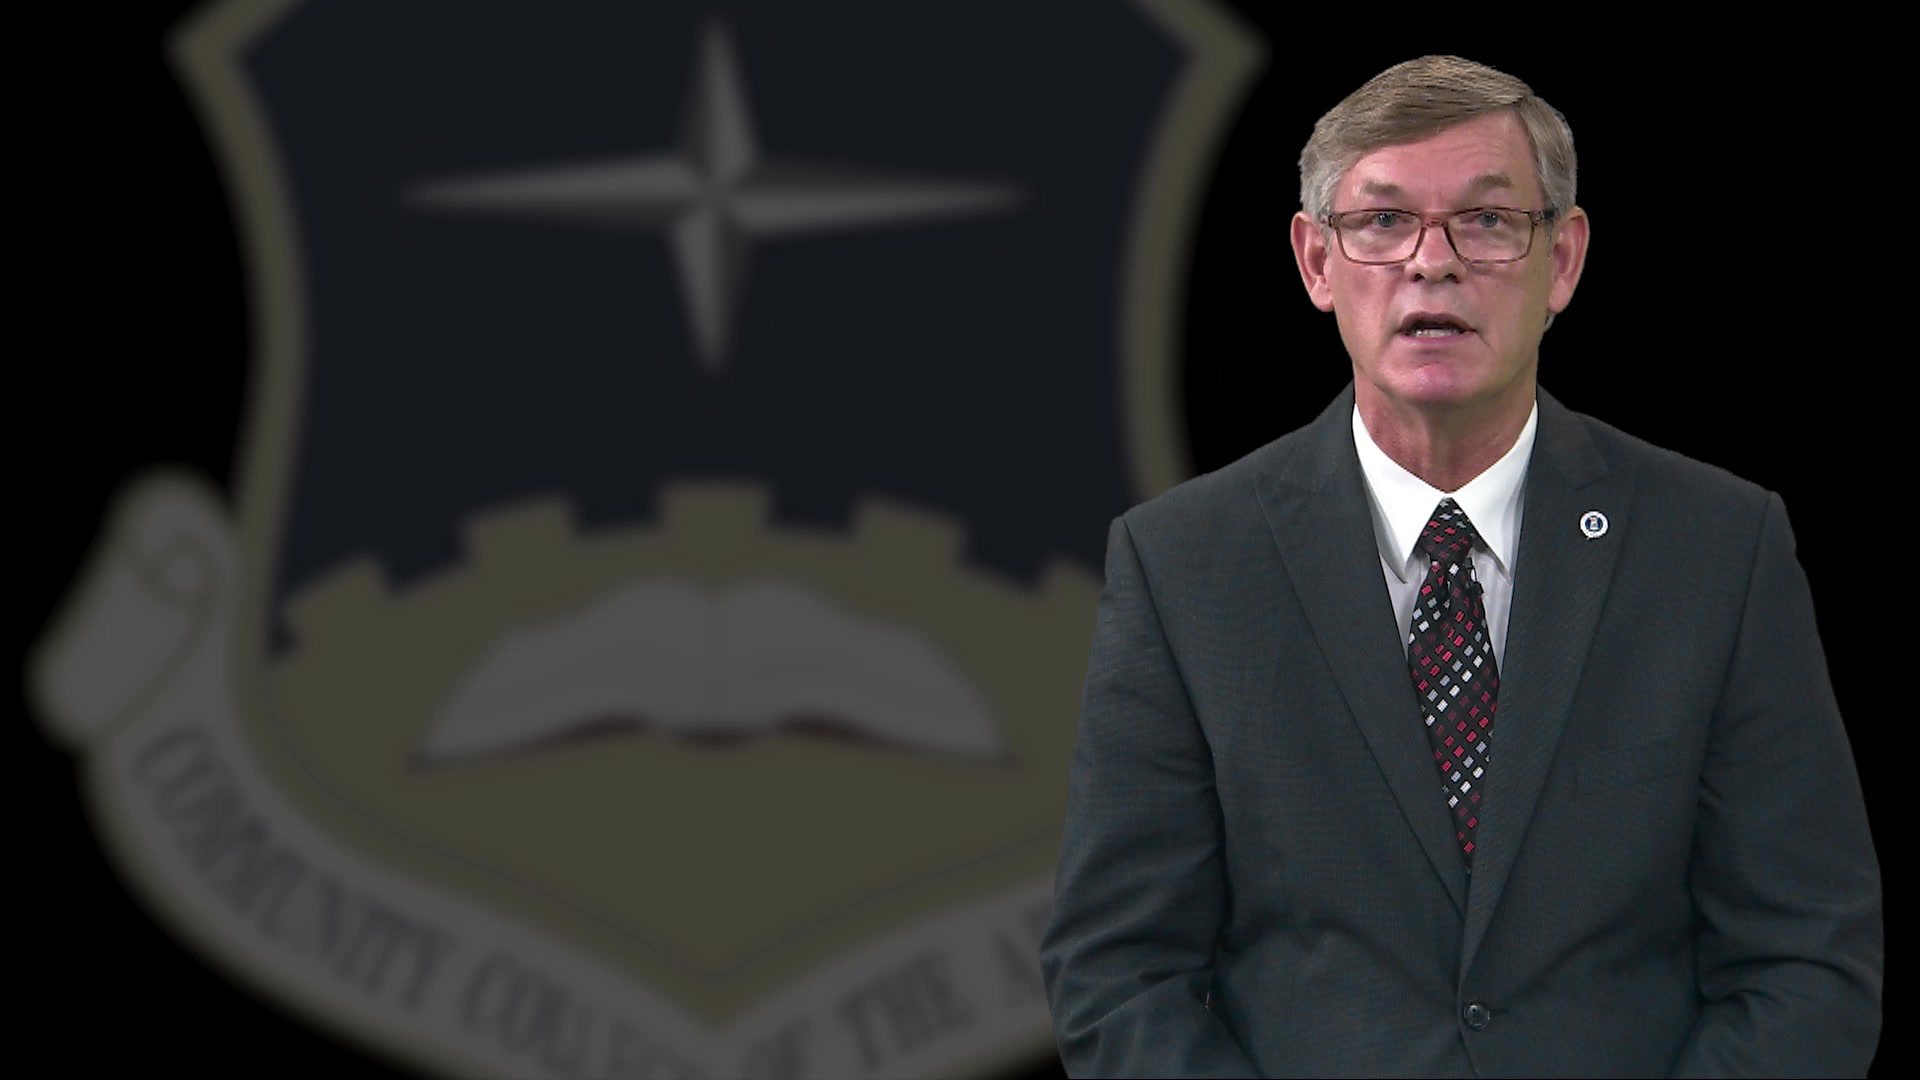 Dr. Hank Dasinger, Dean of the Community College of the Air Force announces a new degree program Military Technology and Applied Sciences Management (MTASM).